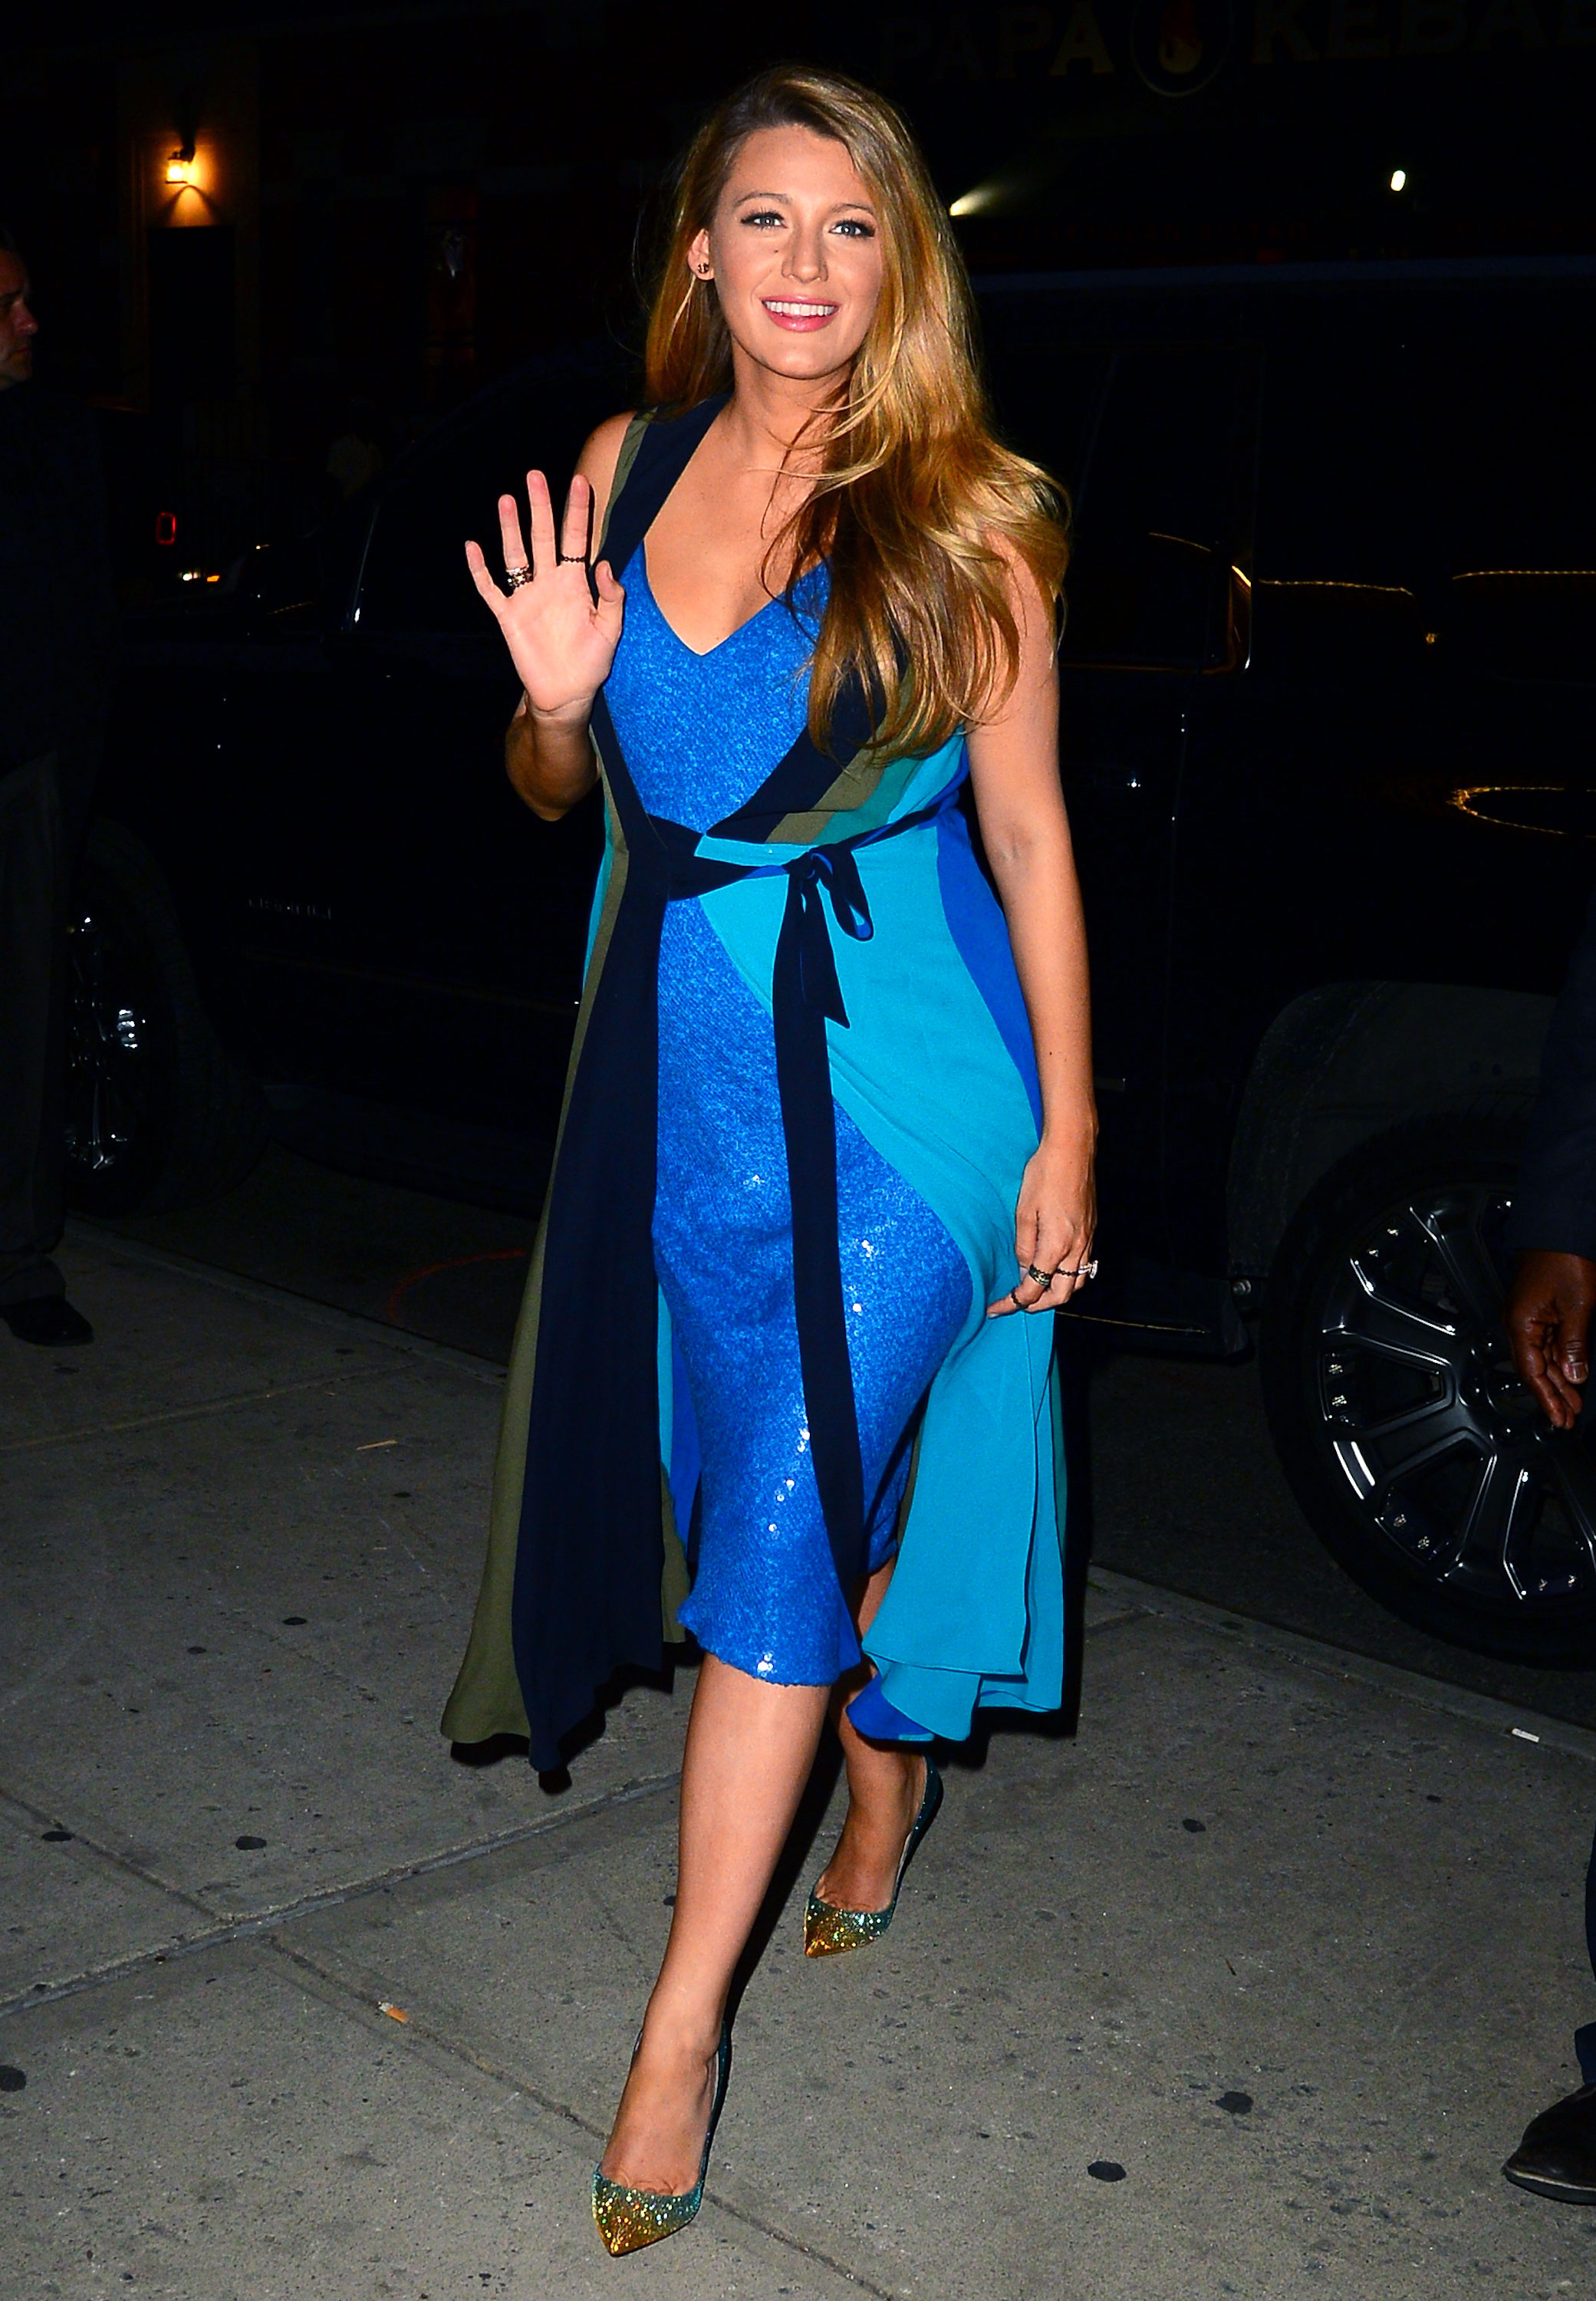 Pregnant Blake Lively Just Wore Two Different Dresses at ce